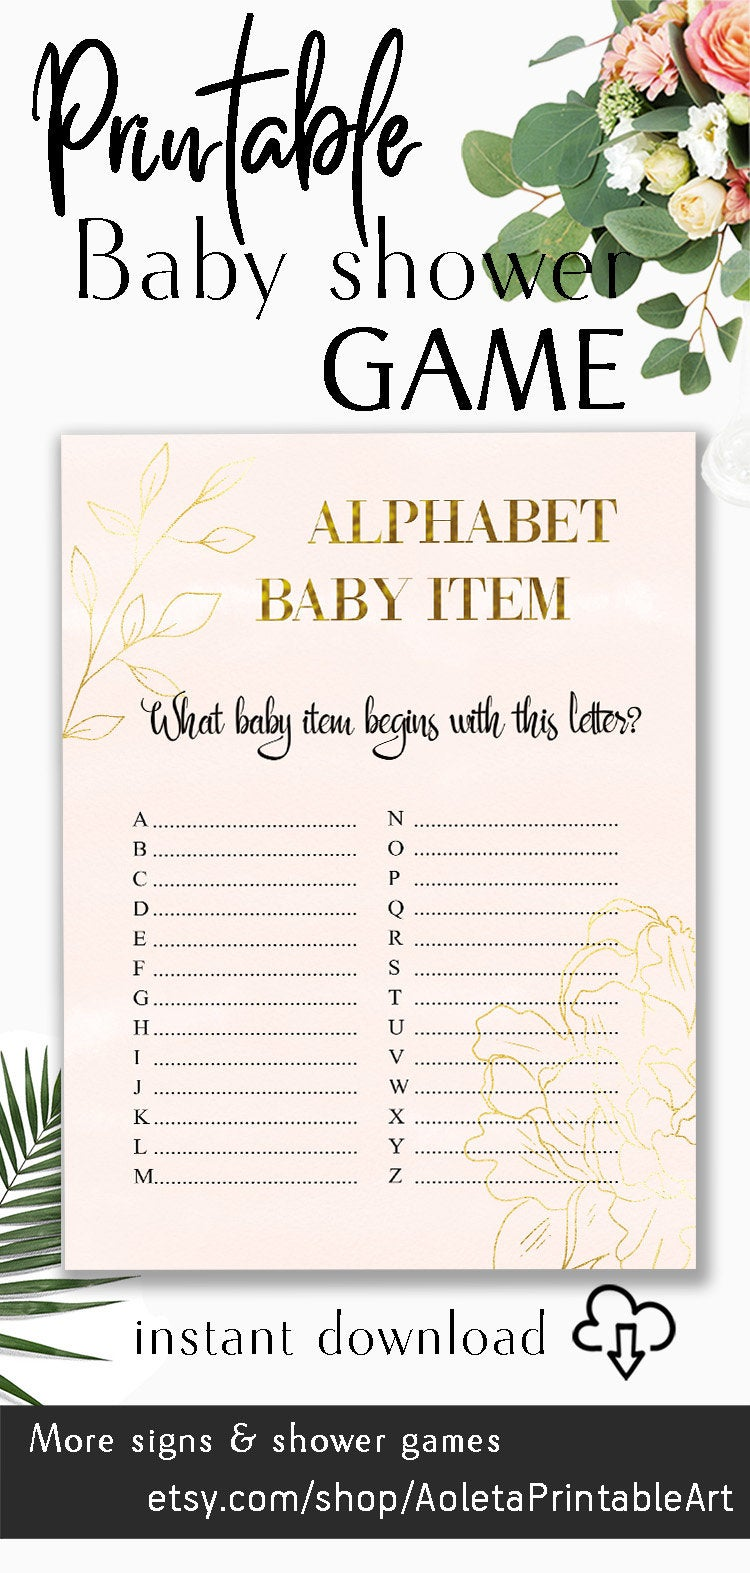 Baby Items Alphabet : items, alphabet, Alphabet, Shower, Game,, Items, PRINTABLE, Blush, Gold,, Games,, Letter, Aoleta